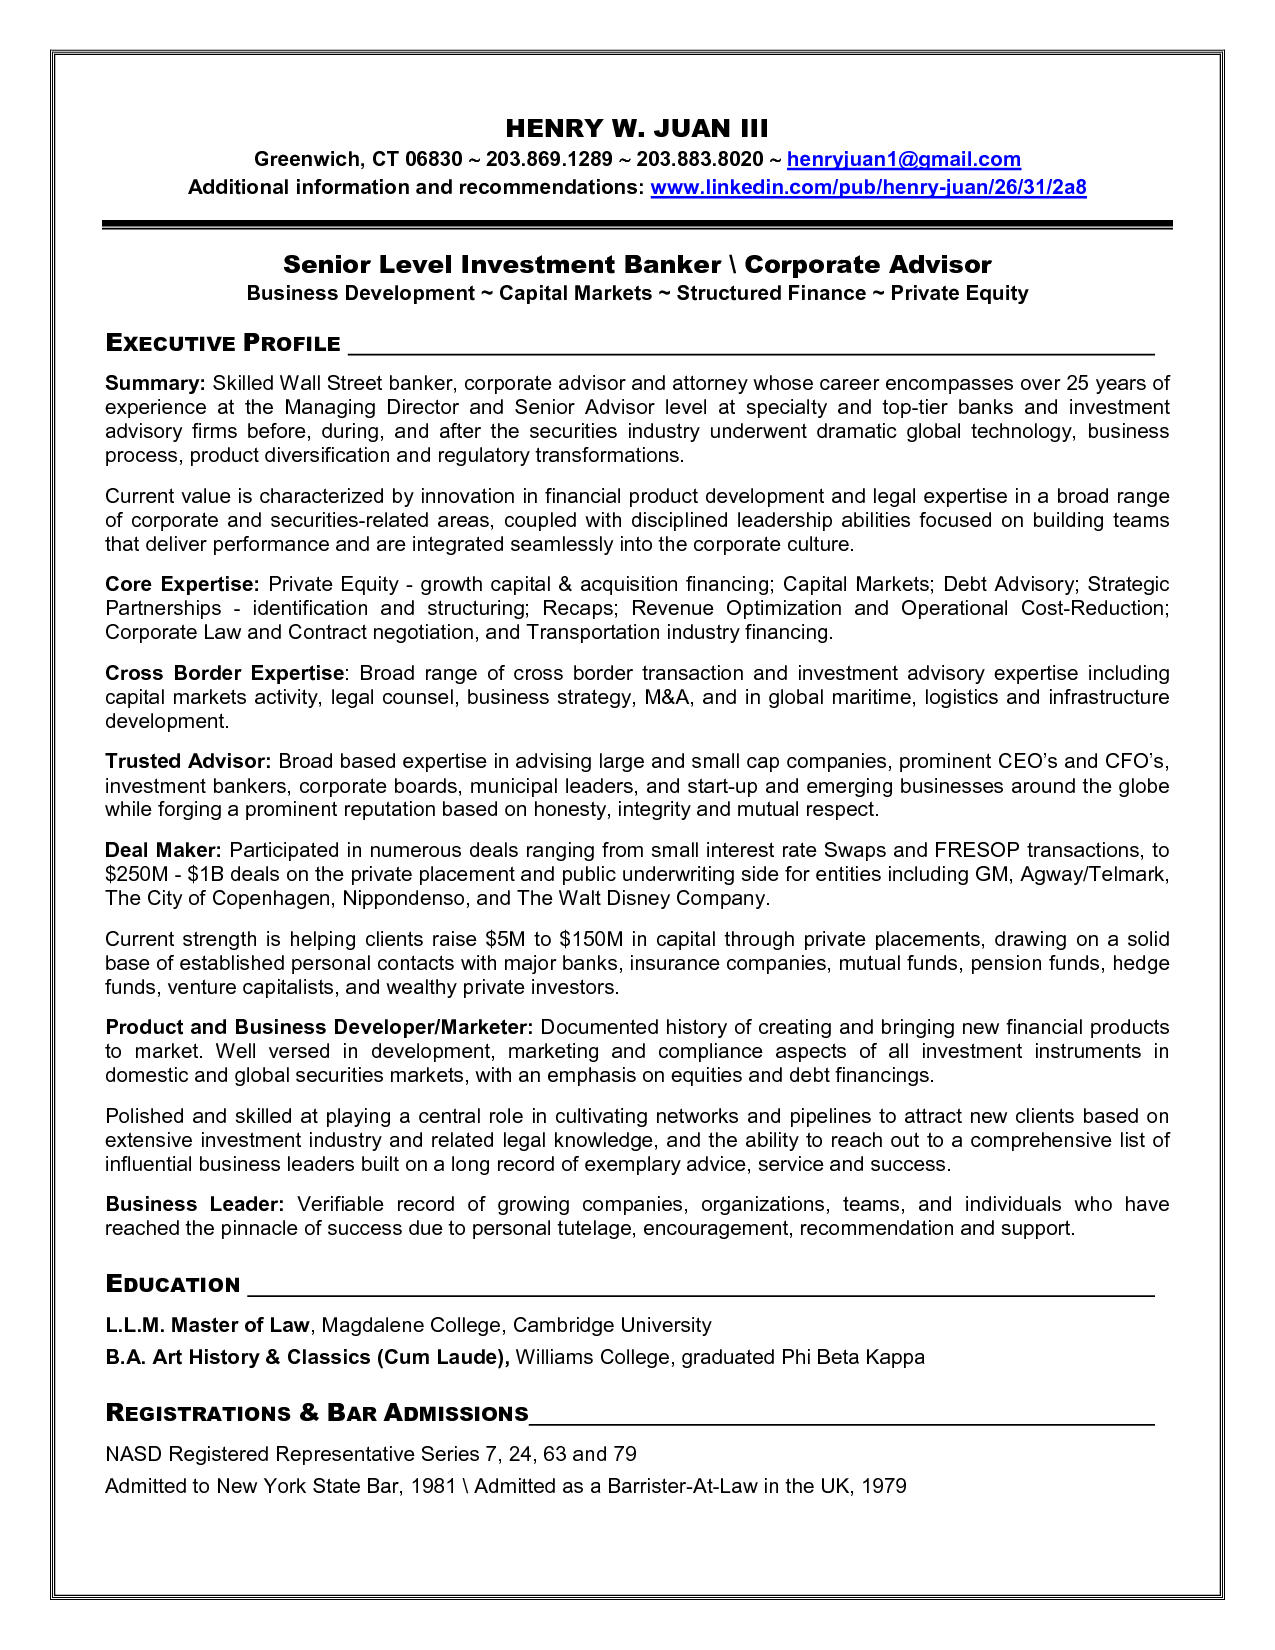 Career Resume Template Resume Examples Structured Finance Marketing Resume